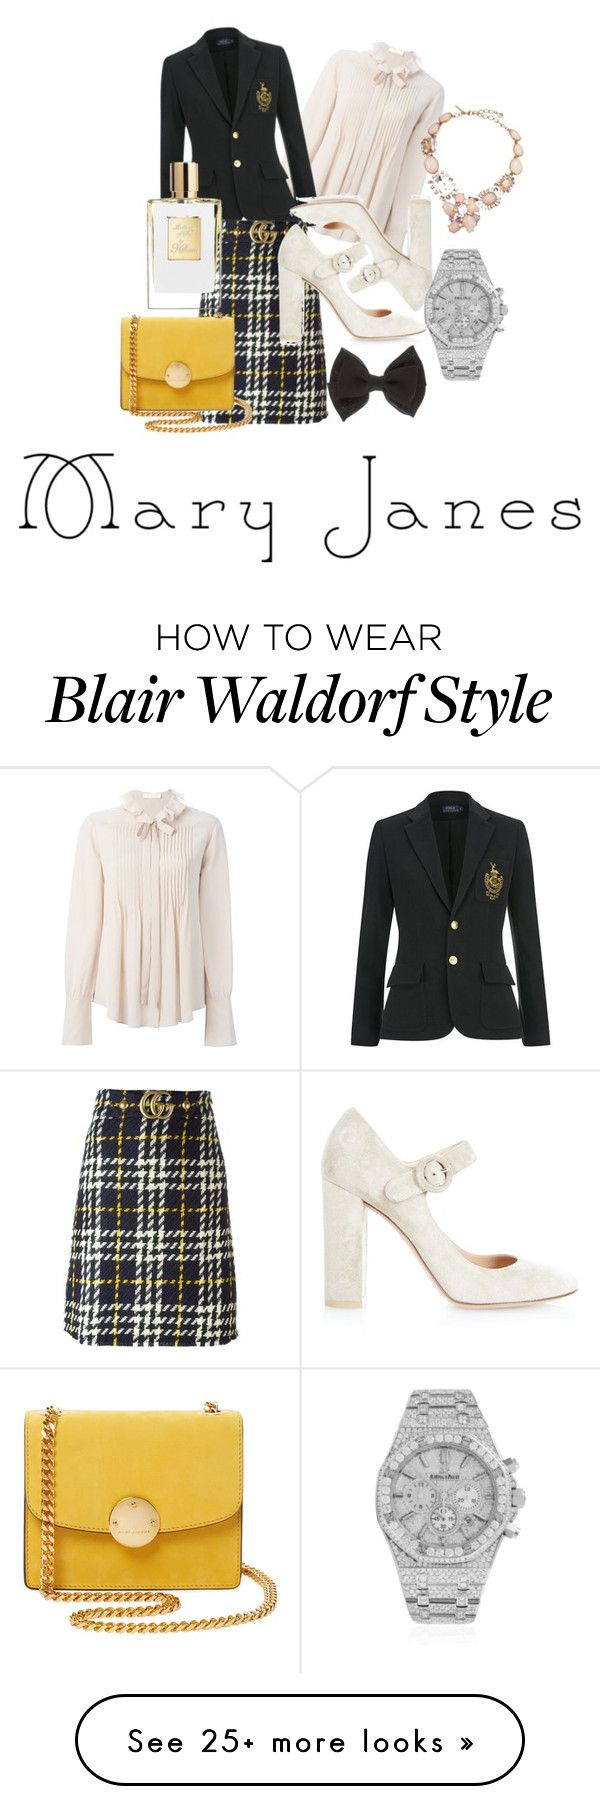 """""""Blair Waldorf style with mary janes shoes"""" by ronjavinberg on Polyvore featuring Chloé, Gucci, Gianvito Rossi, Marc Jacobs, Audemars Piguet and Os…"""